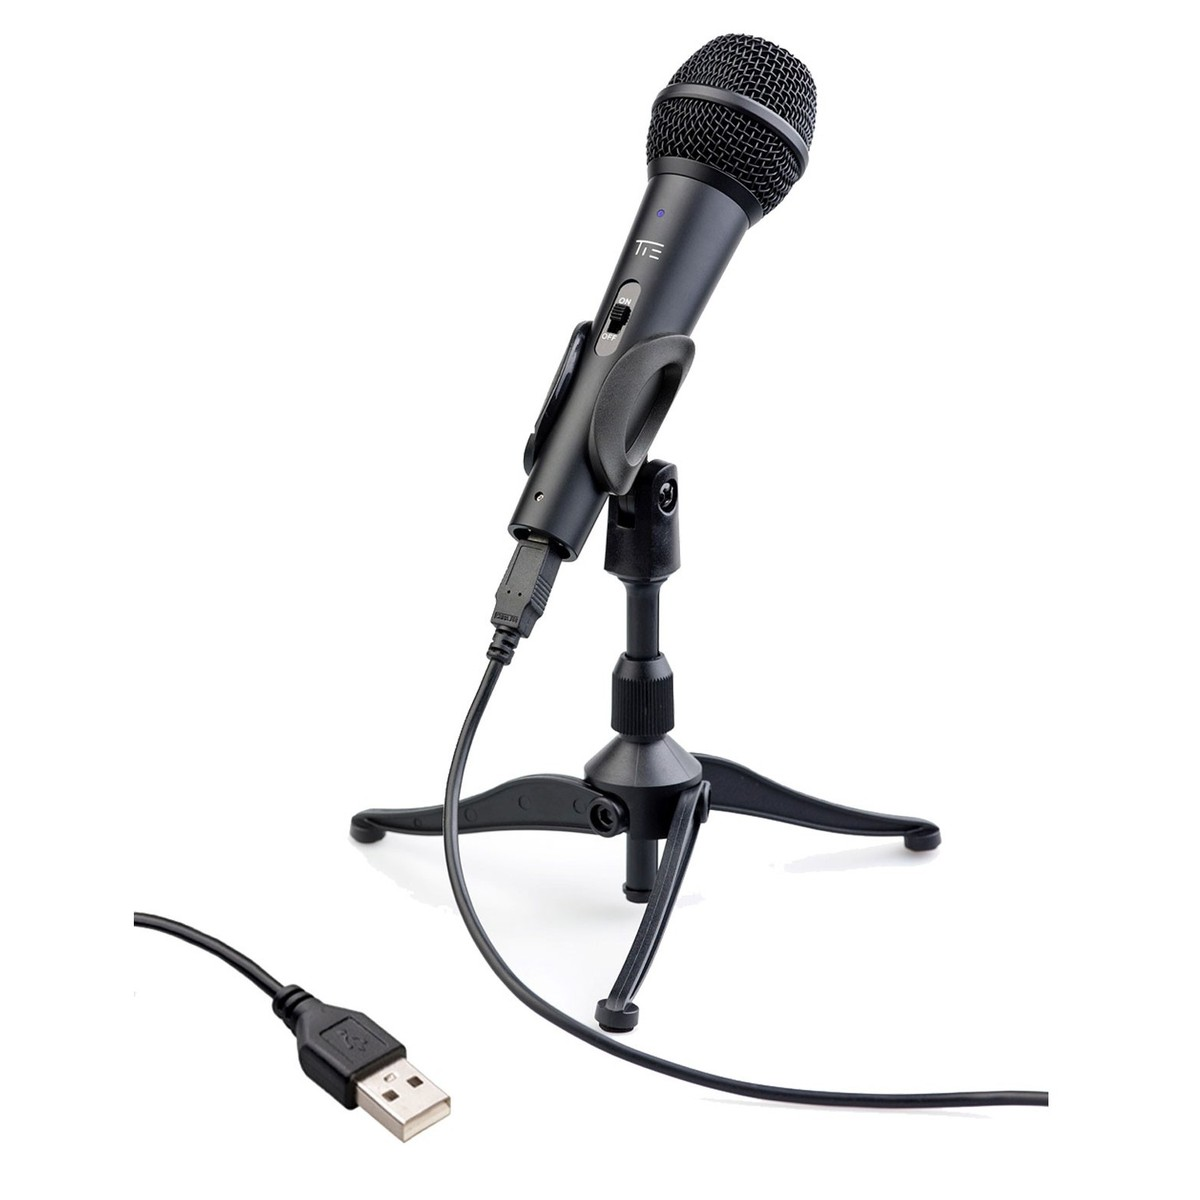 Omnitronic M 22 USB Dynamic Microphone with SZ H100